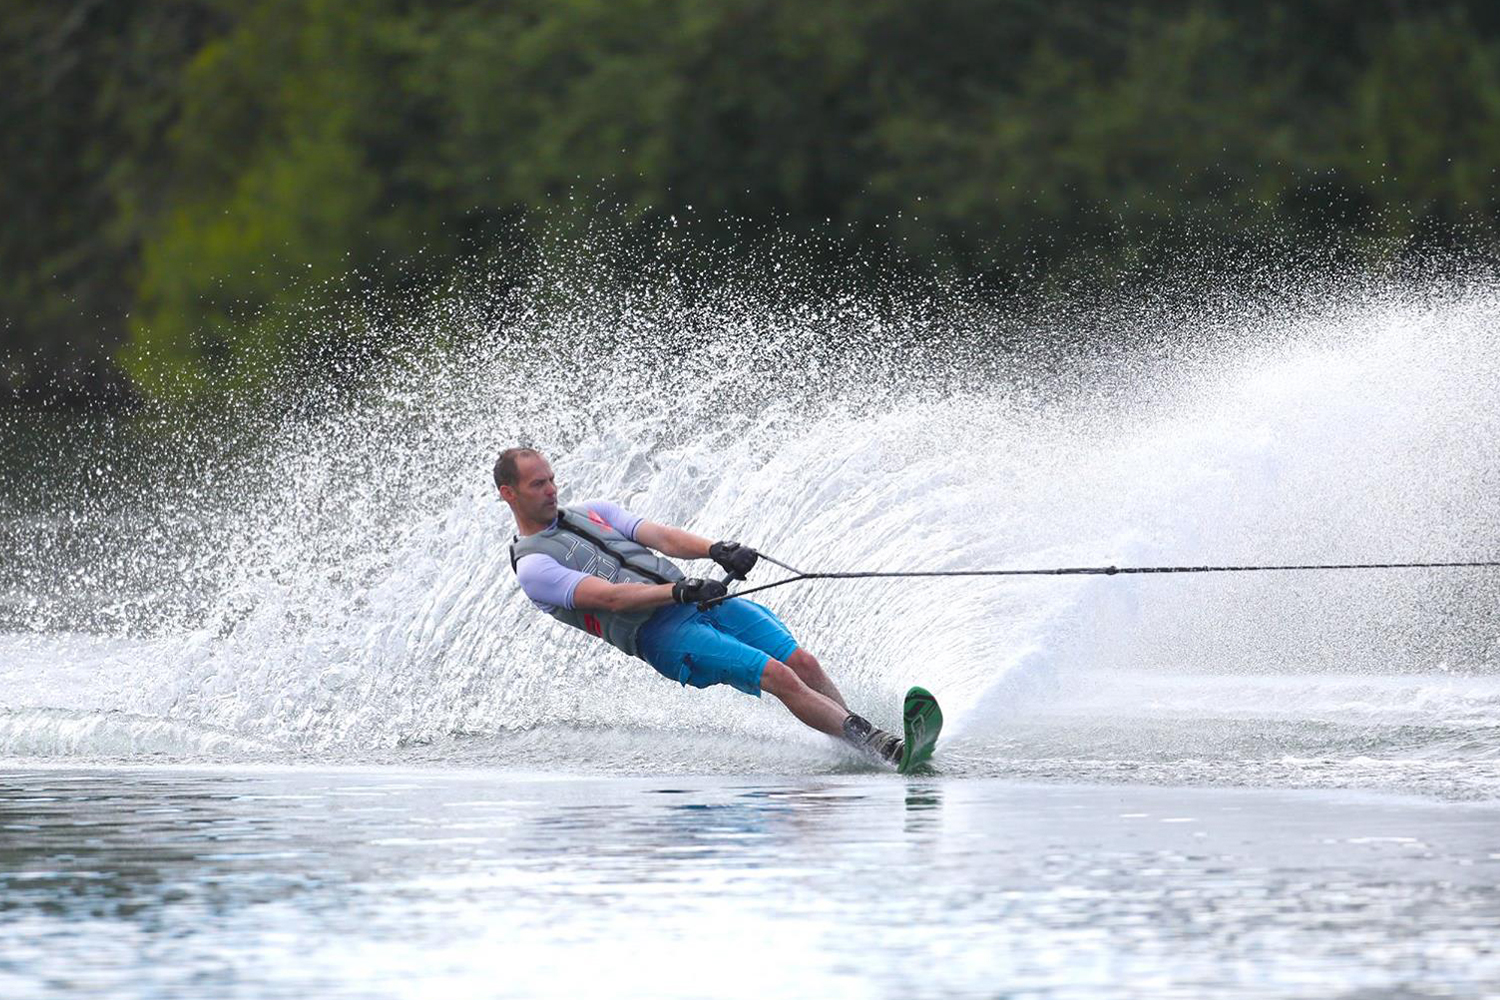 Ellingham Waterski and Wakeboard Club - slalom waterskiing